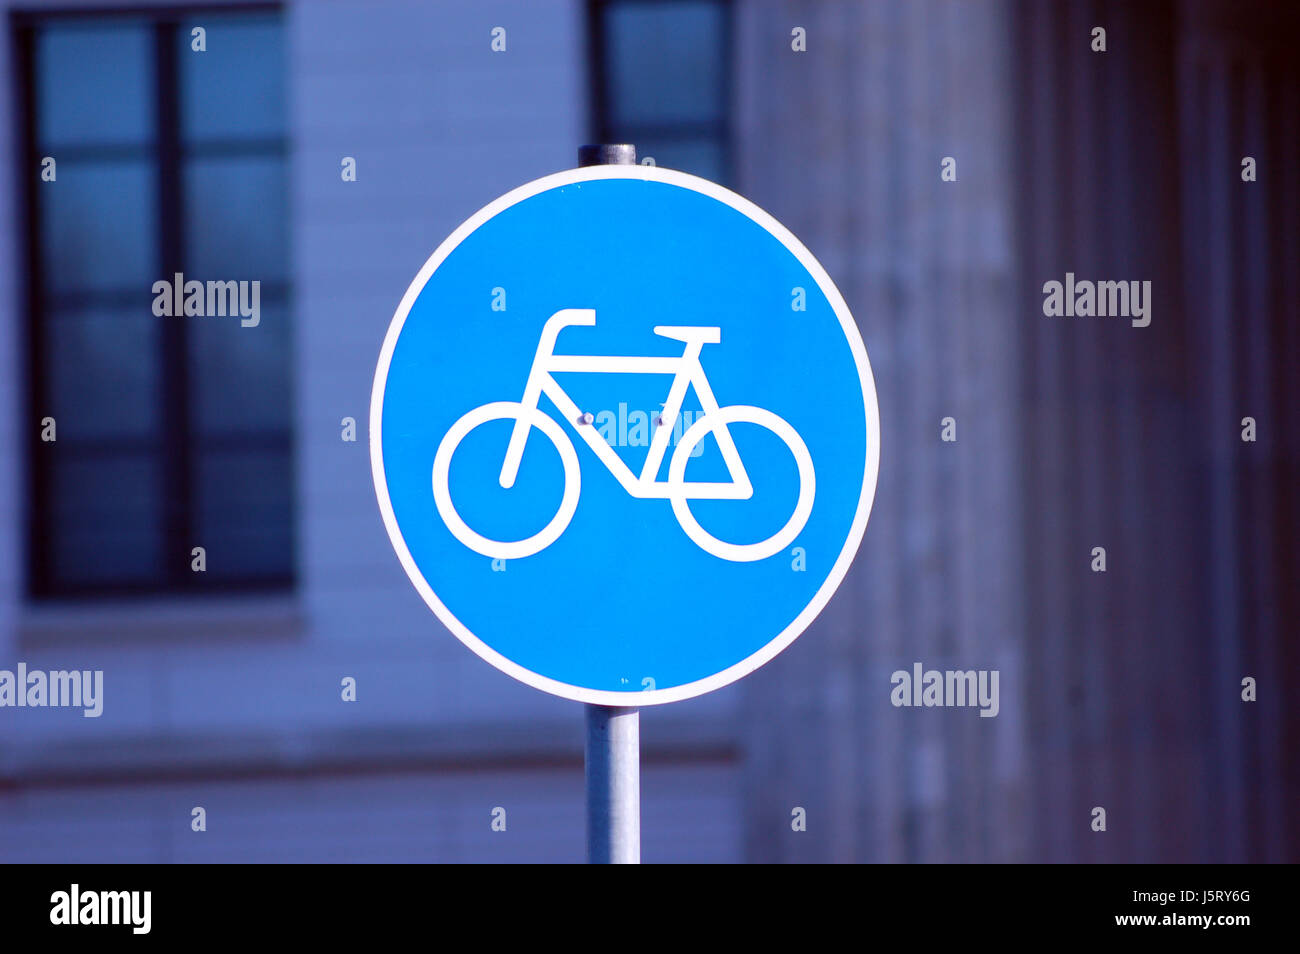 sign signal blue traffic sign traffic regulations complete perfect street road - Stock Image